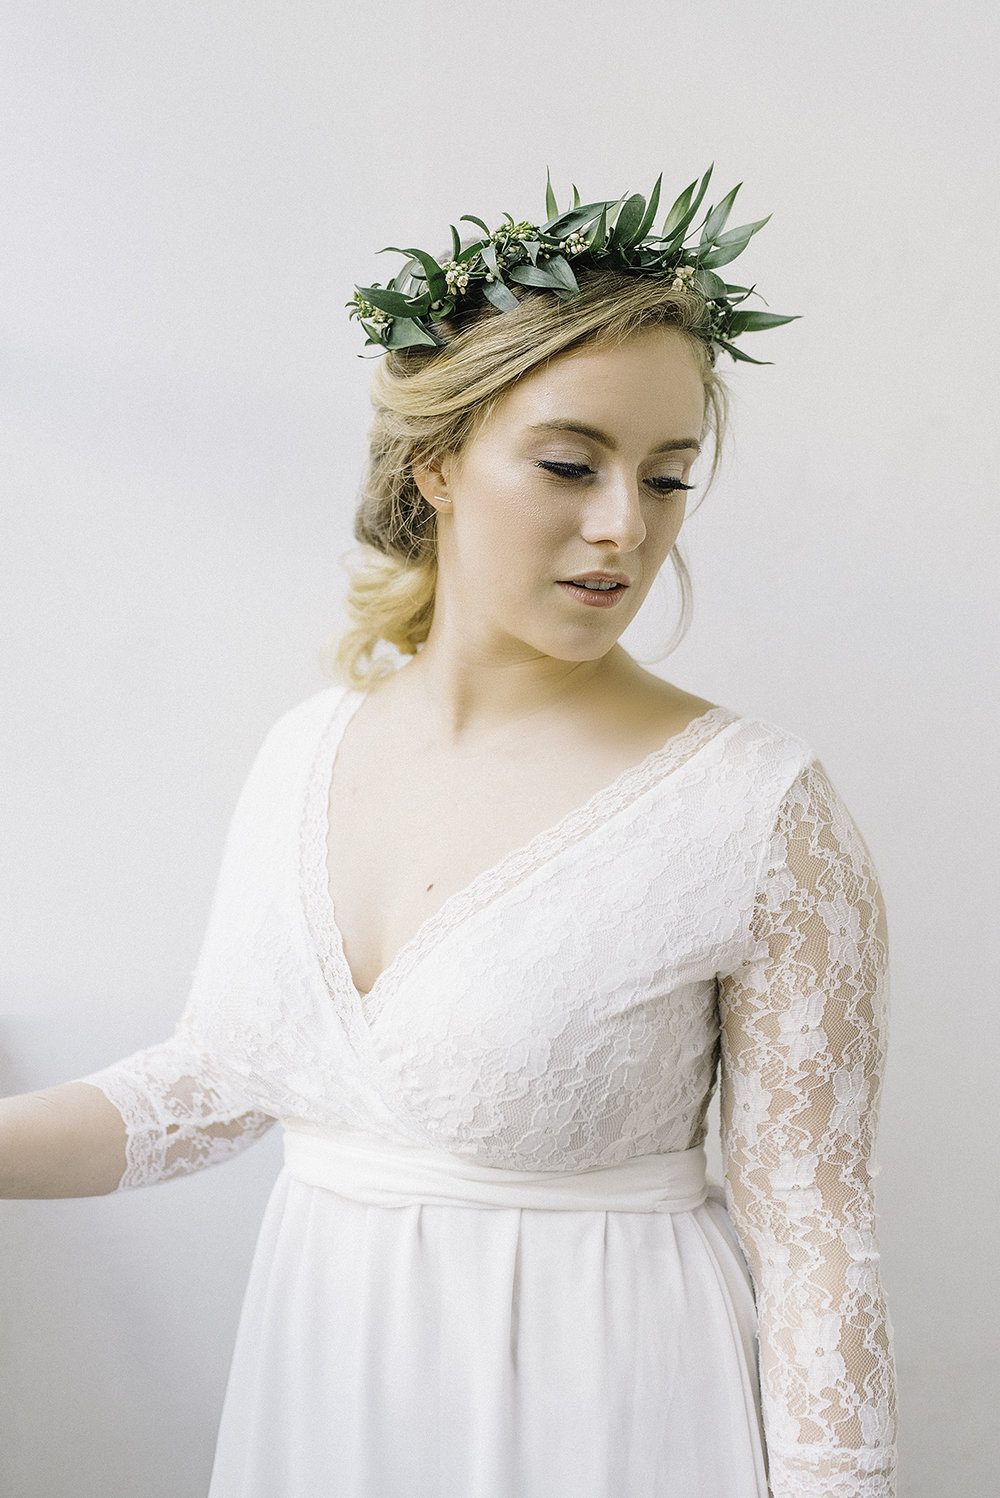 I really like the leafy crown, a new take on the popular flower crown for a more subtle approach.